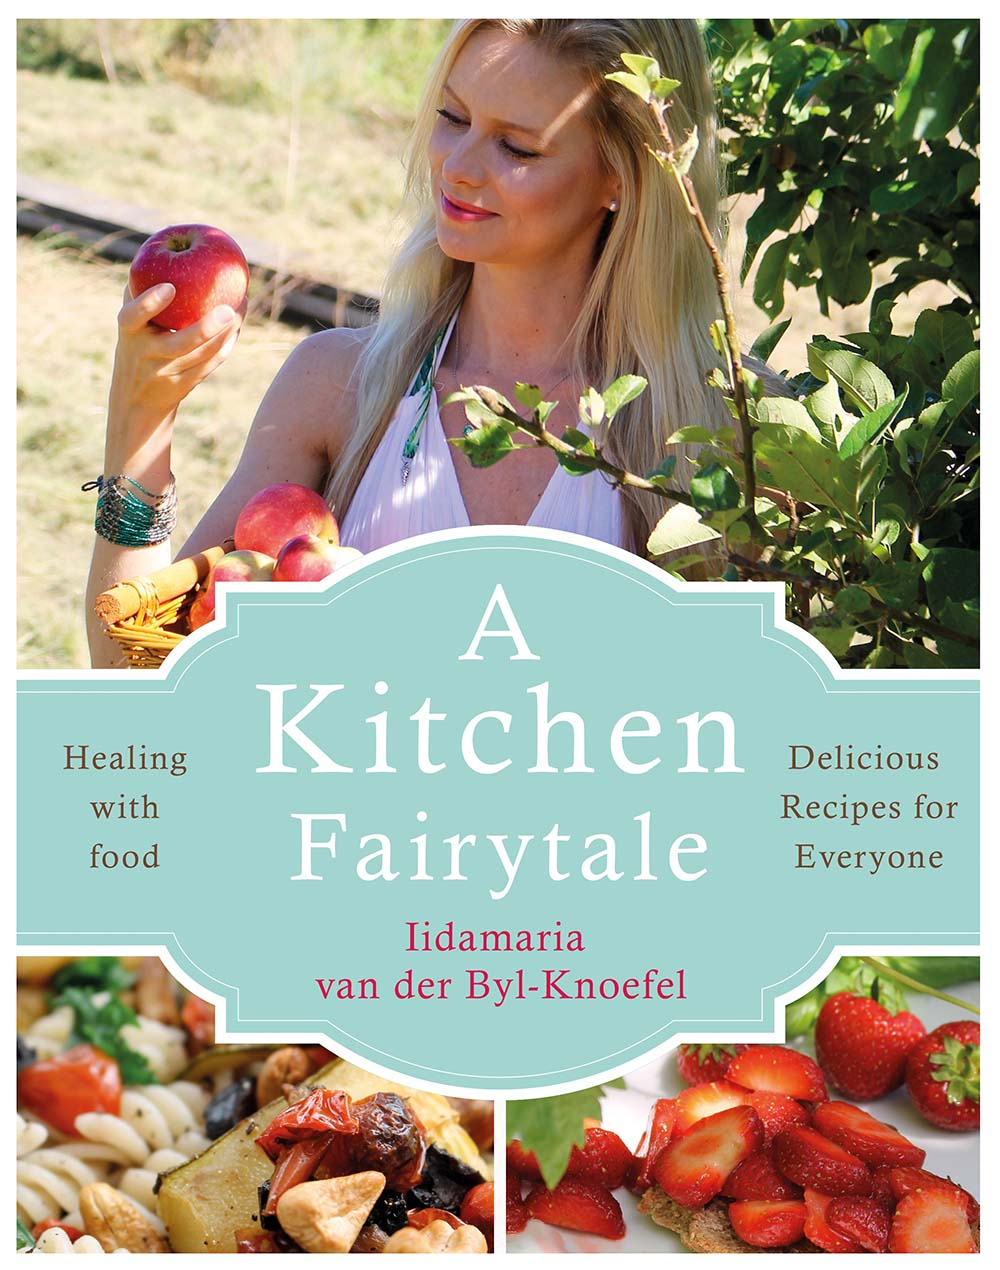 A Kitchen Fairytale Book Cover